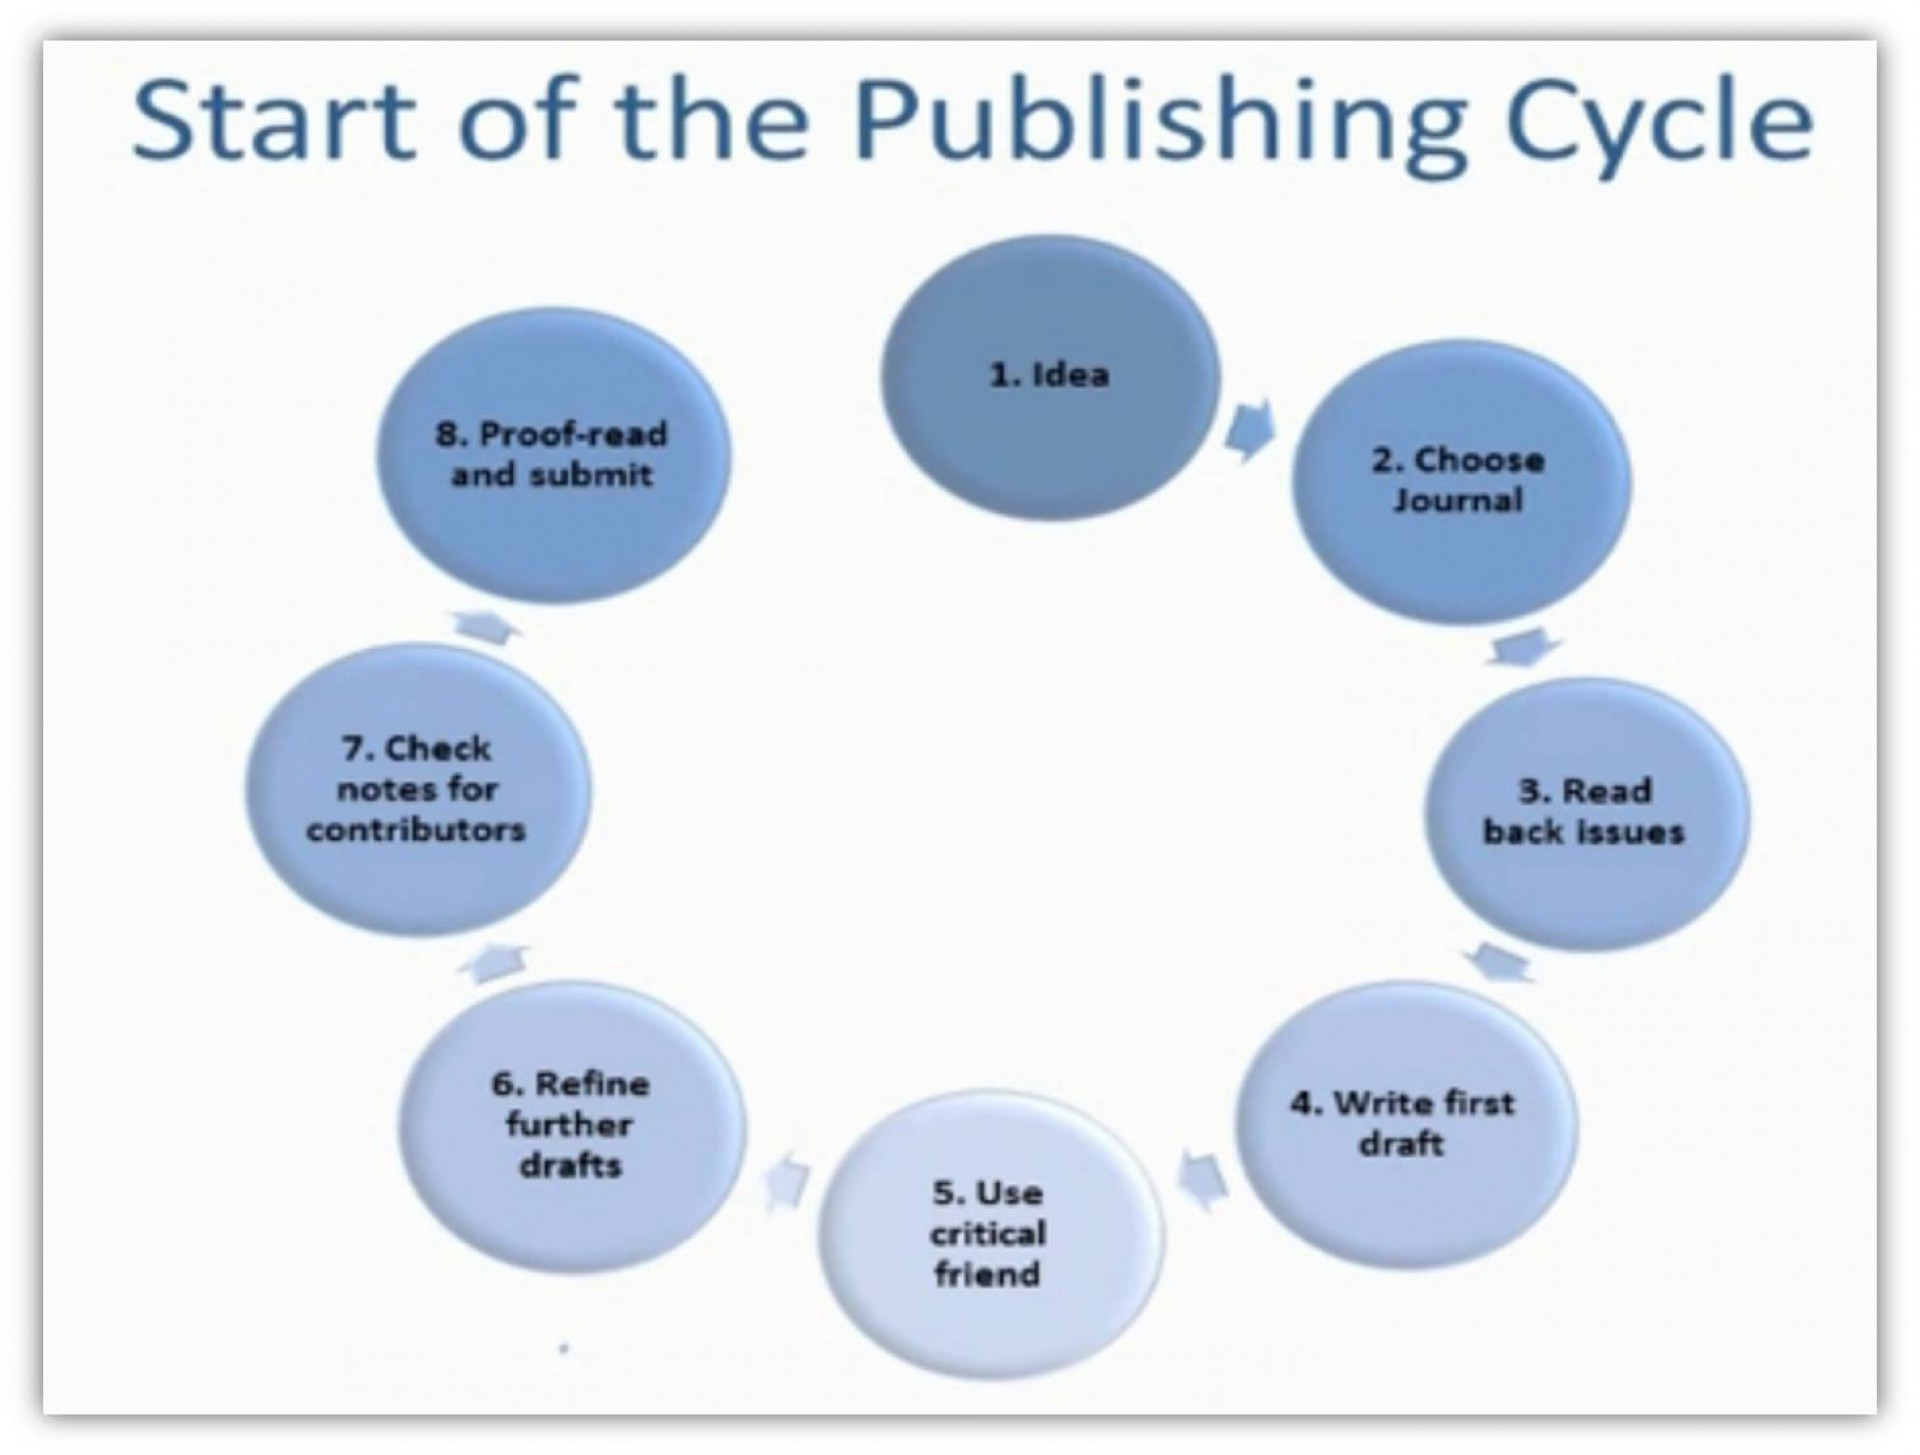 001 Research Paper Publishing Cycle How To Have Stirring A Published Get An Academic India 1920